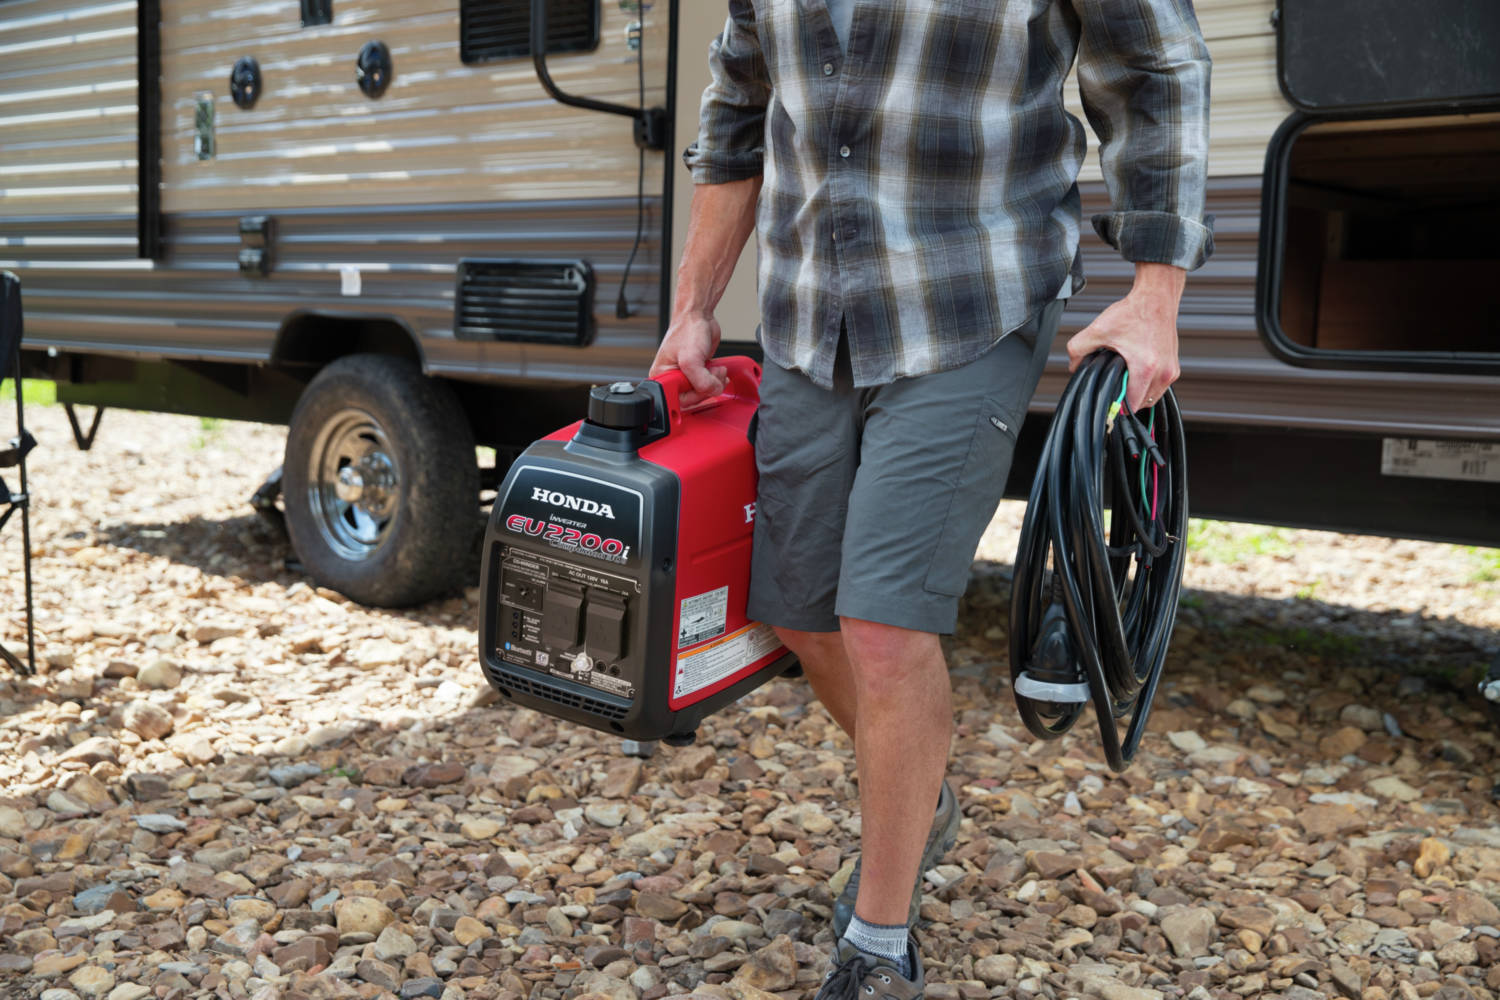 The EU2200i is lightweight and compact making it easy to transport and store